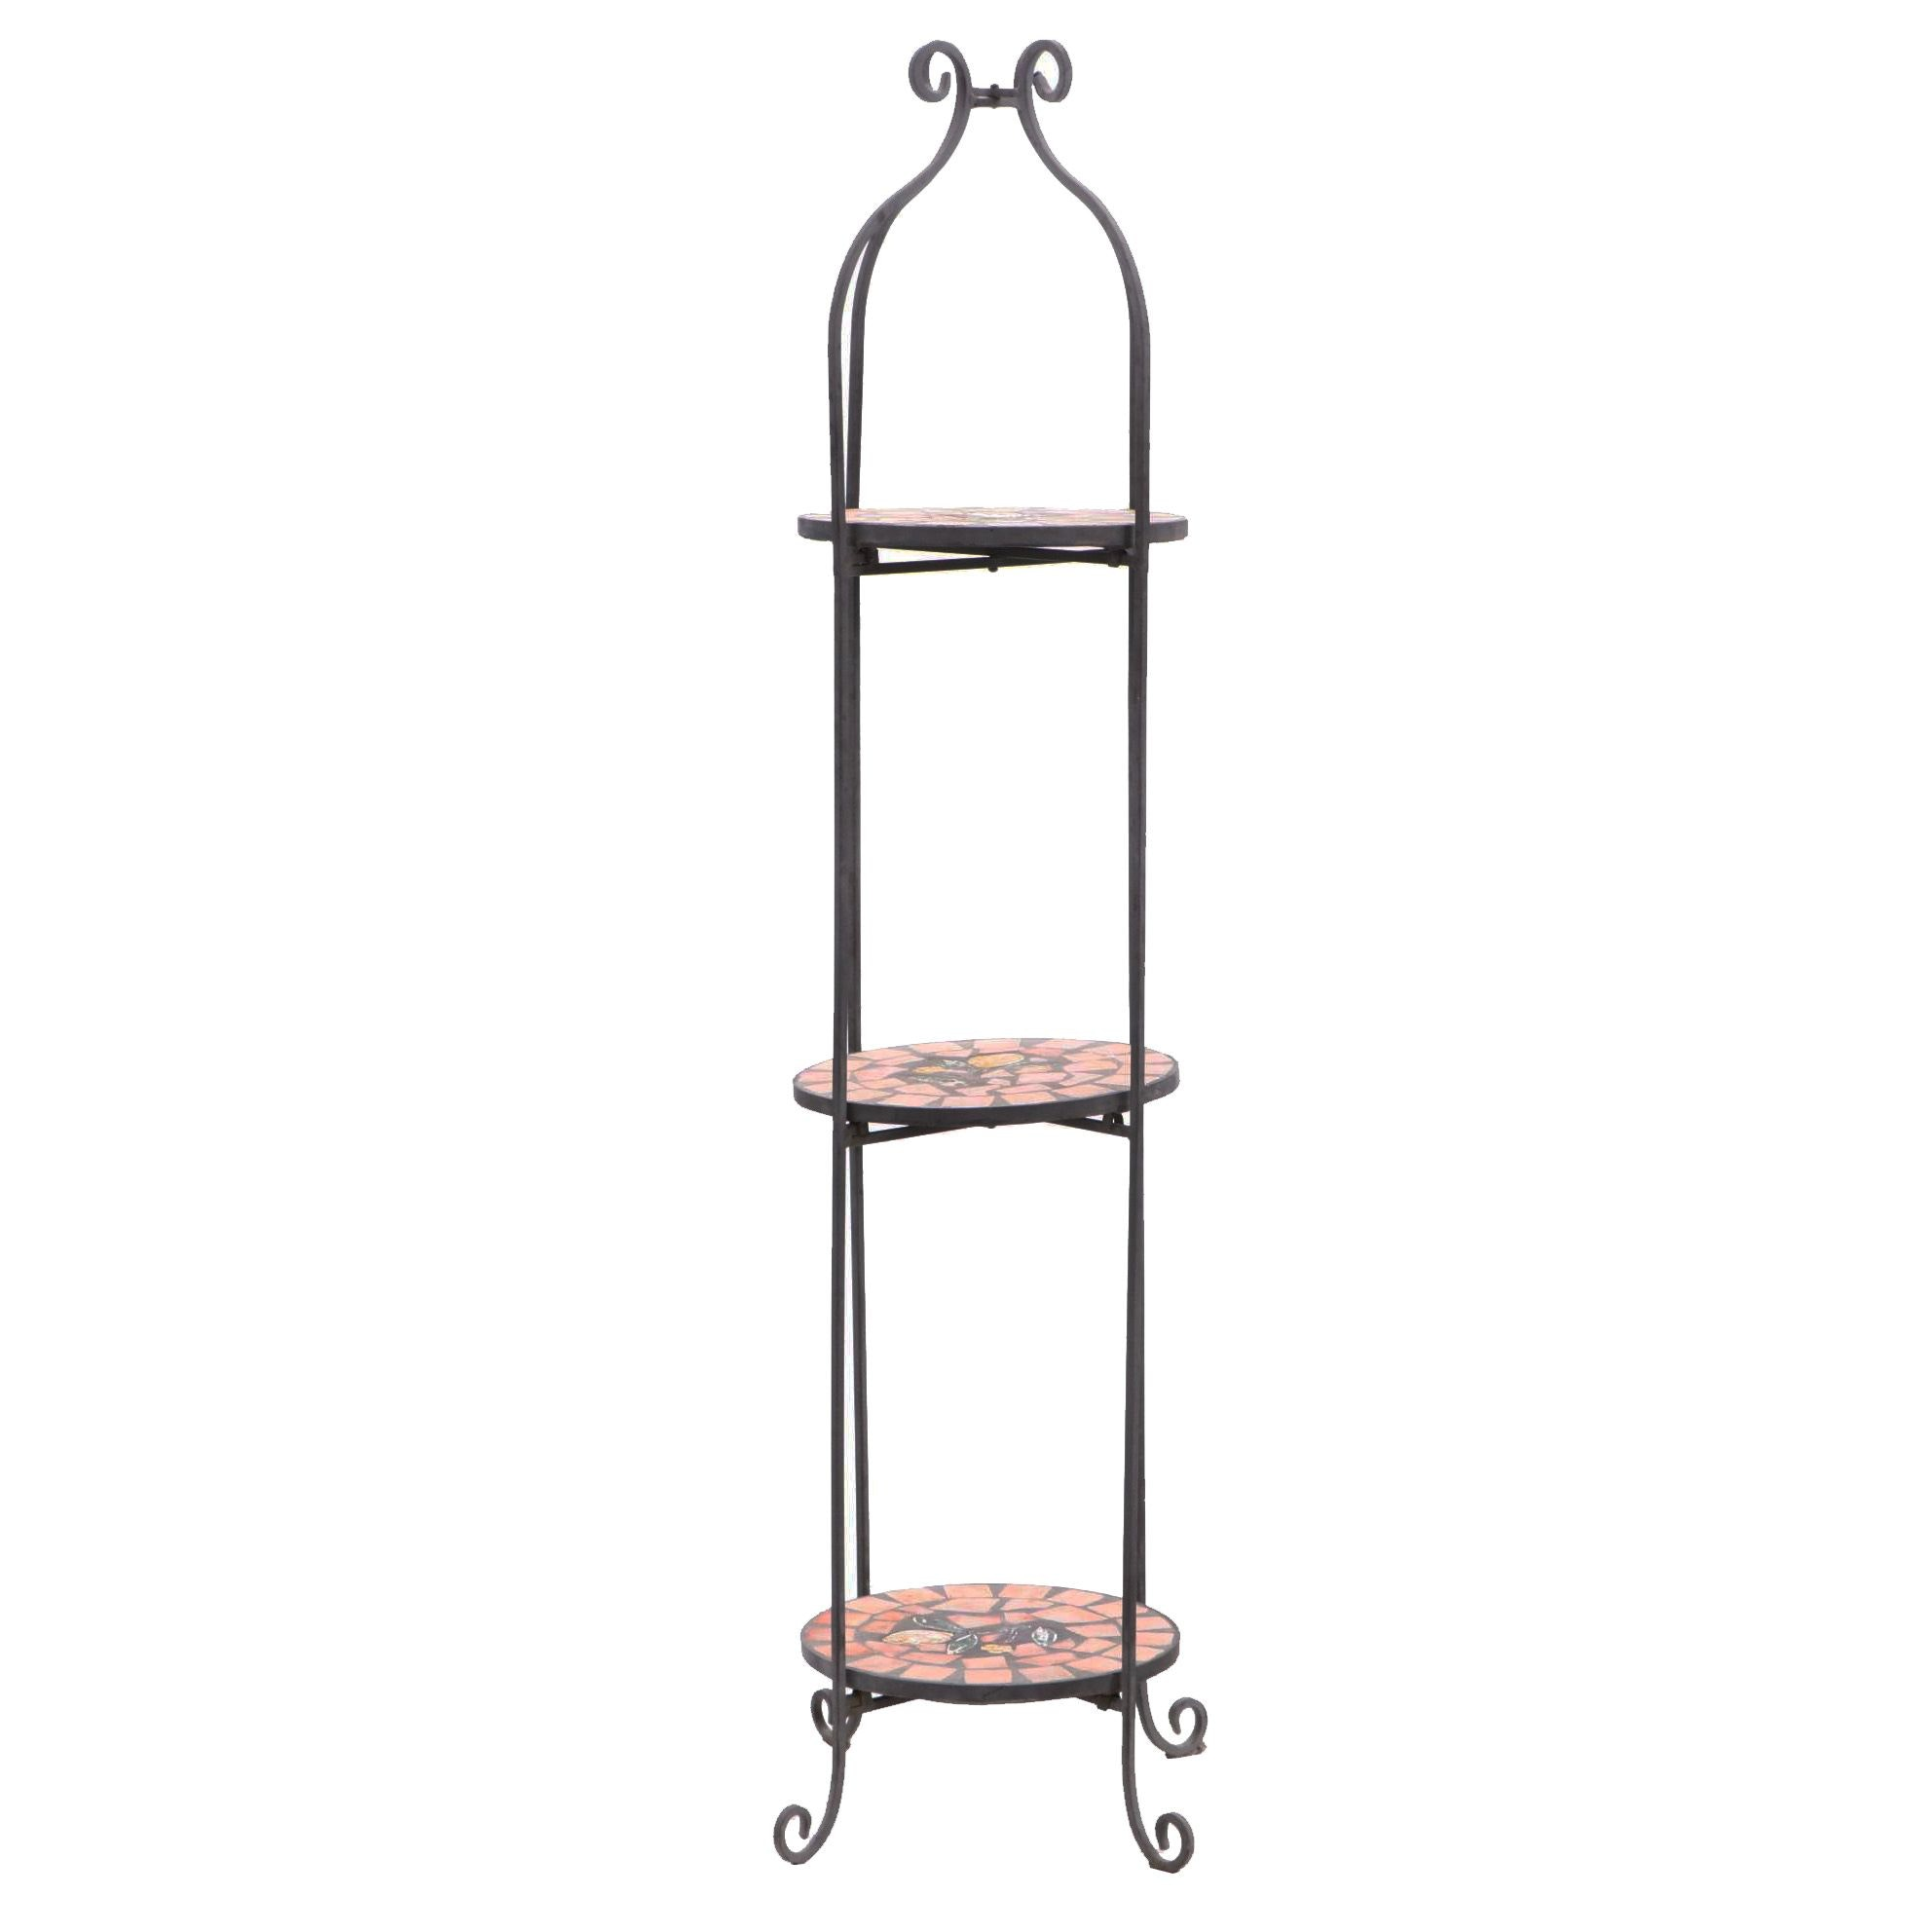 Wrought Iron Three Tier Plant Stand with Tile Shelves